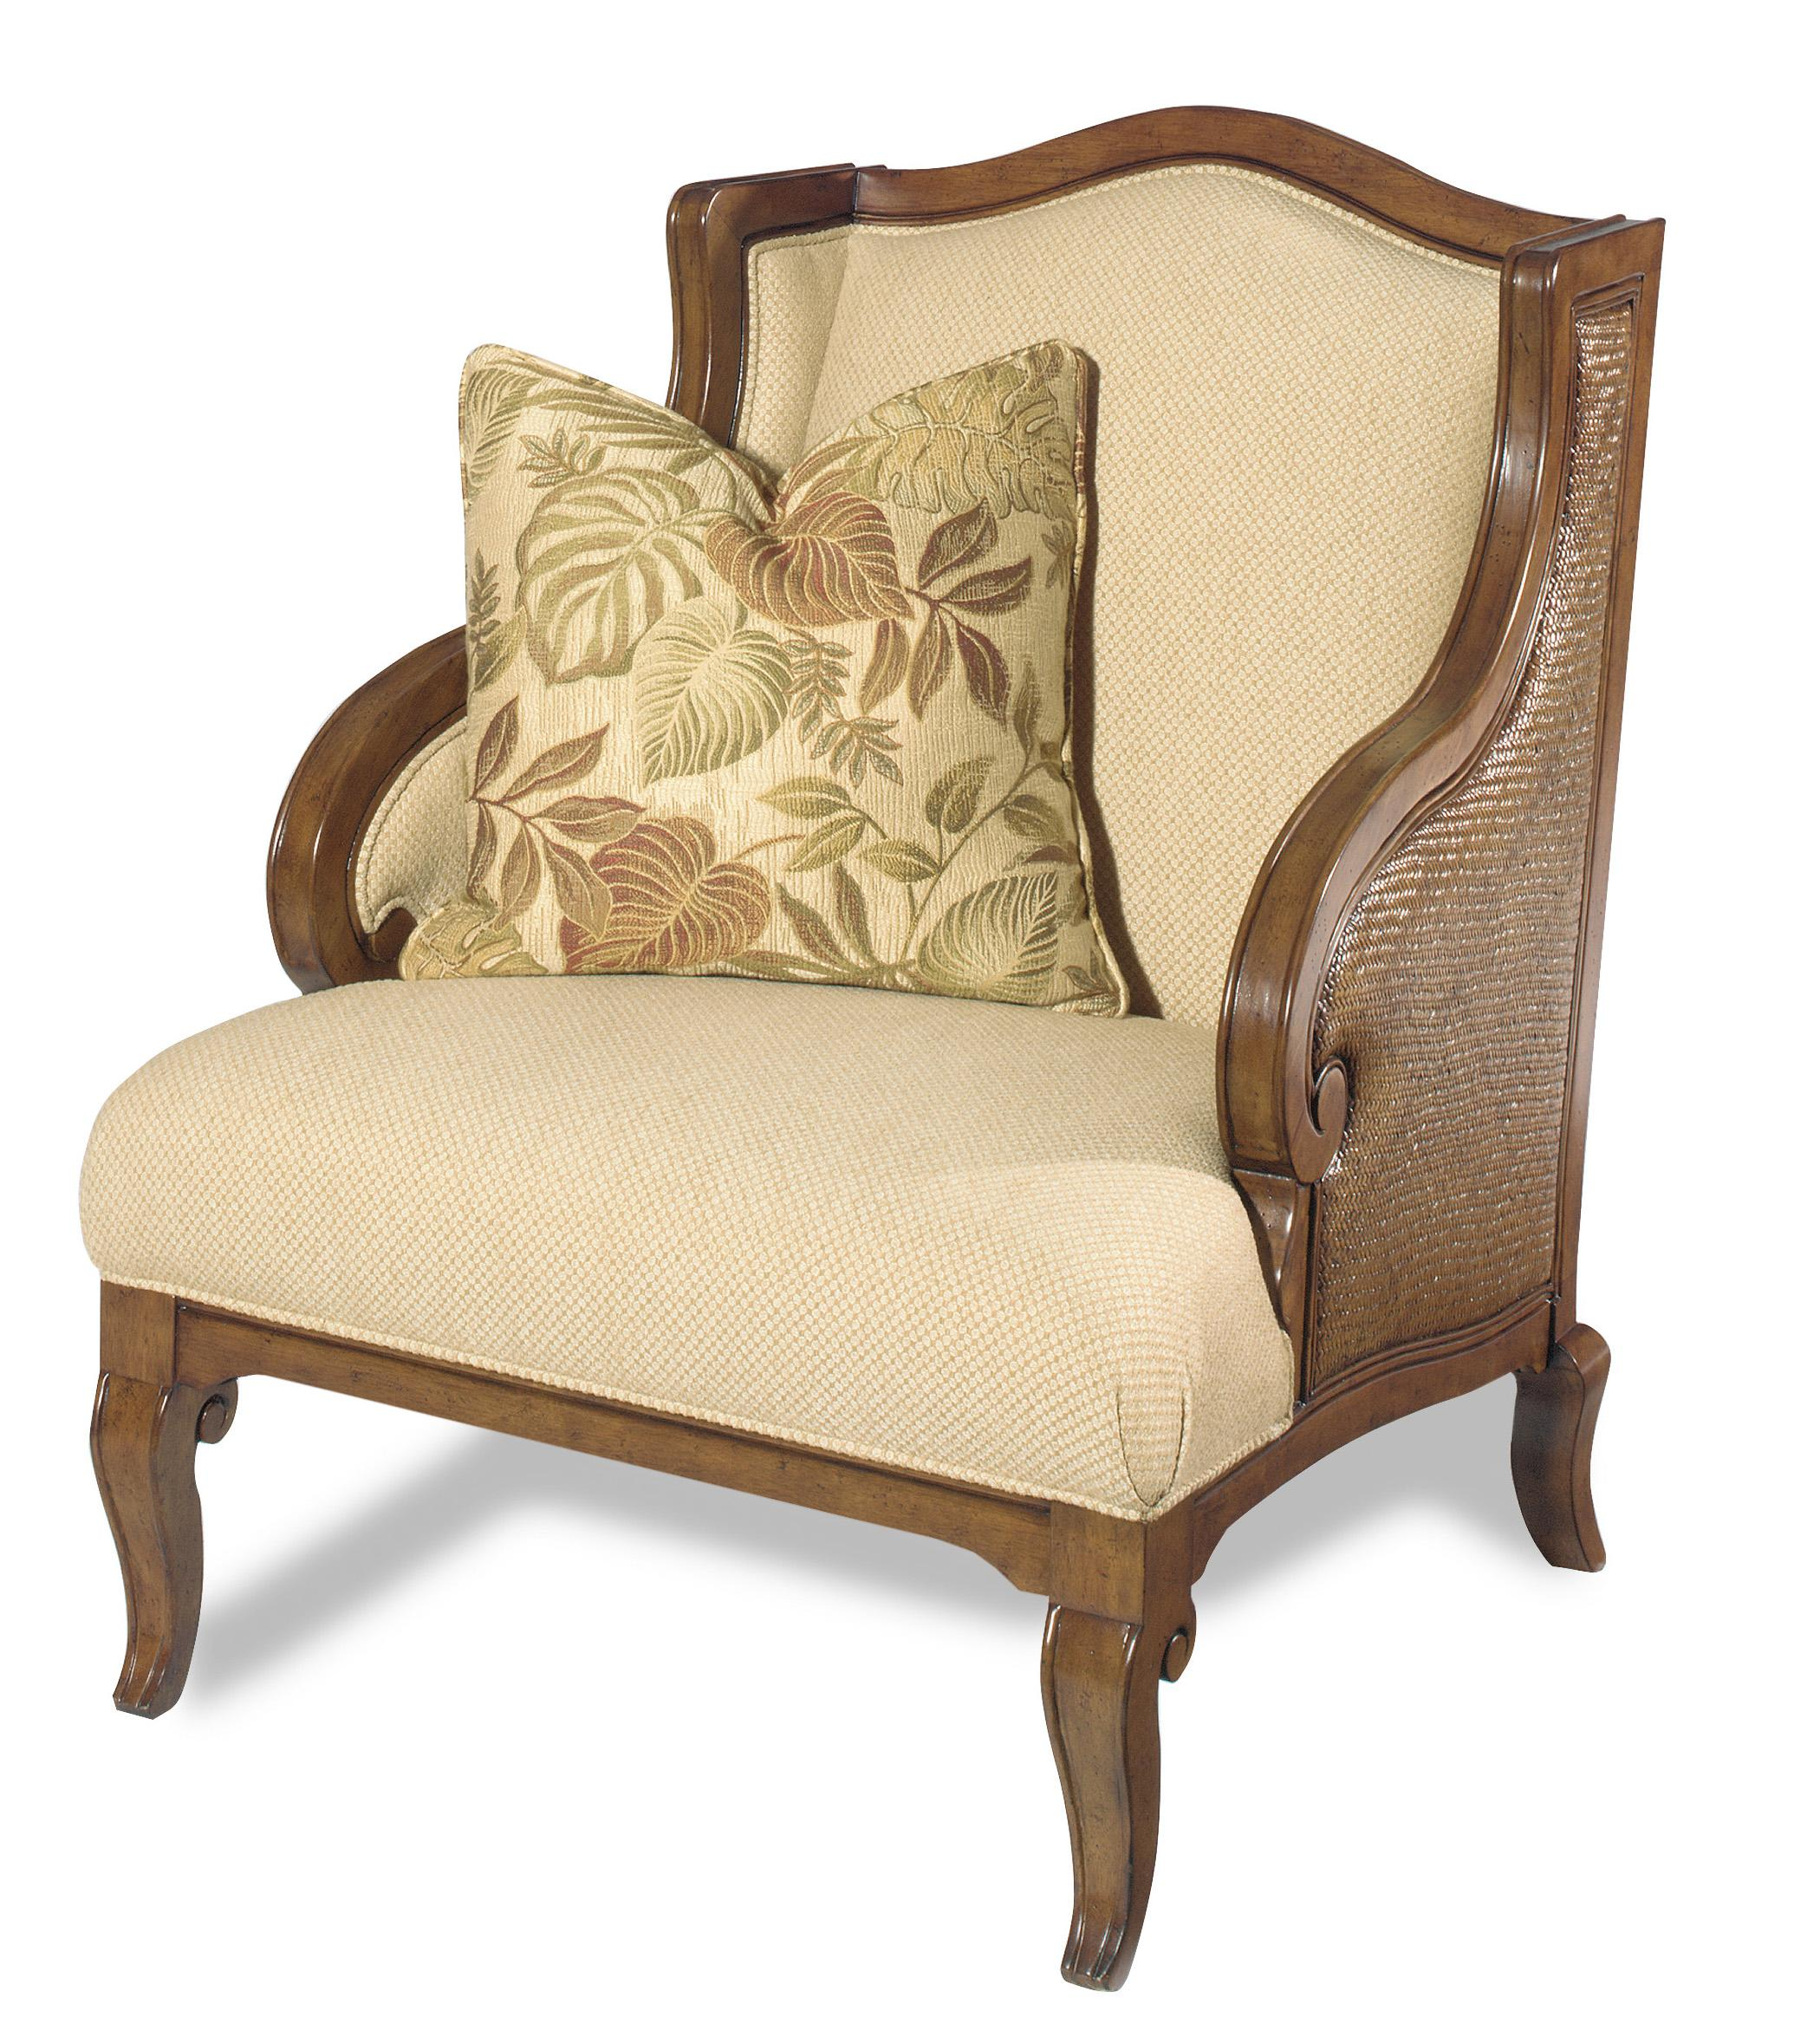 Hooker Furniture Windward Exposed Wood Wing Chair With Raffia Palm Accents    AHFA   Exposed Wood Chair Dealer Locator